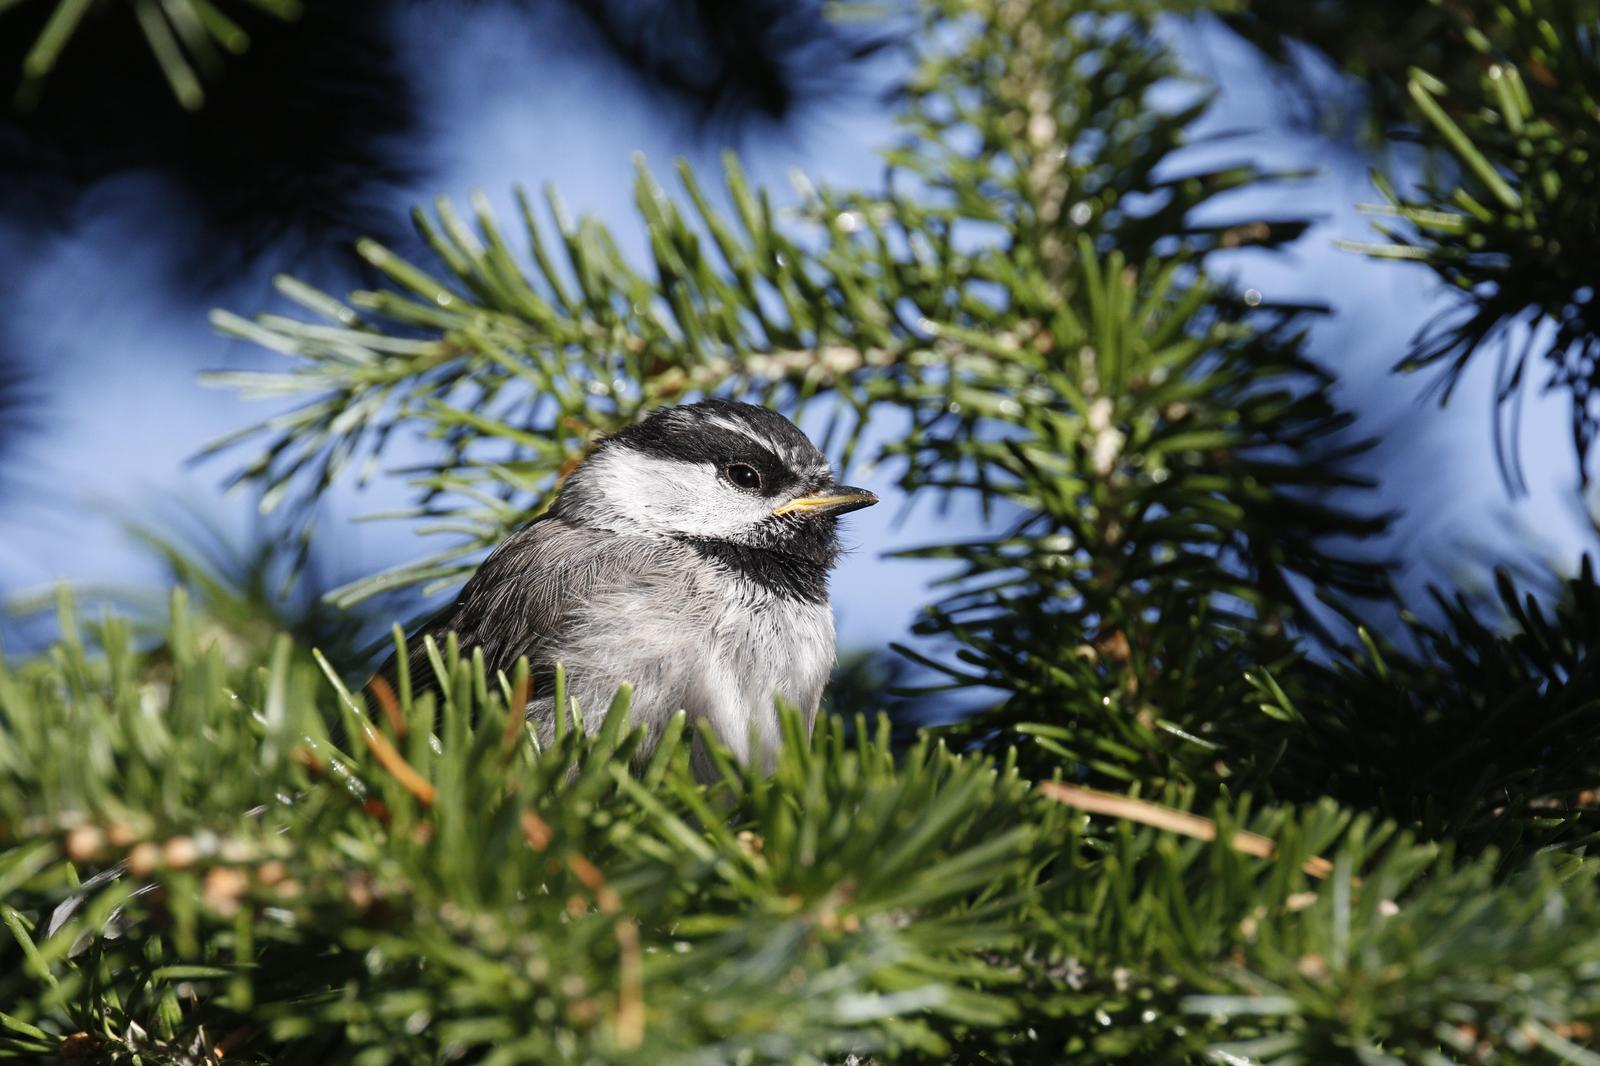 Mountain Chickadee Photo by Emily Willoughby